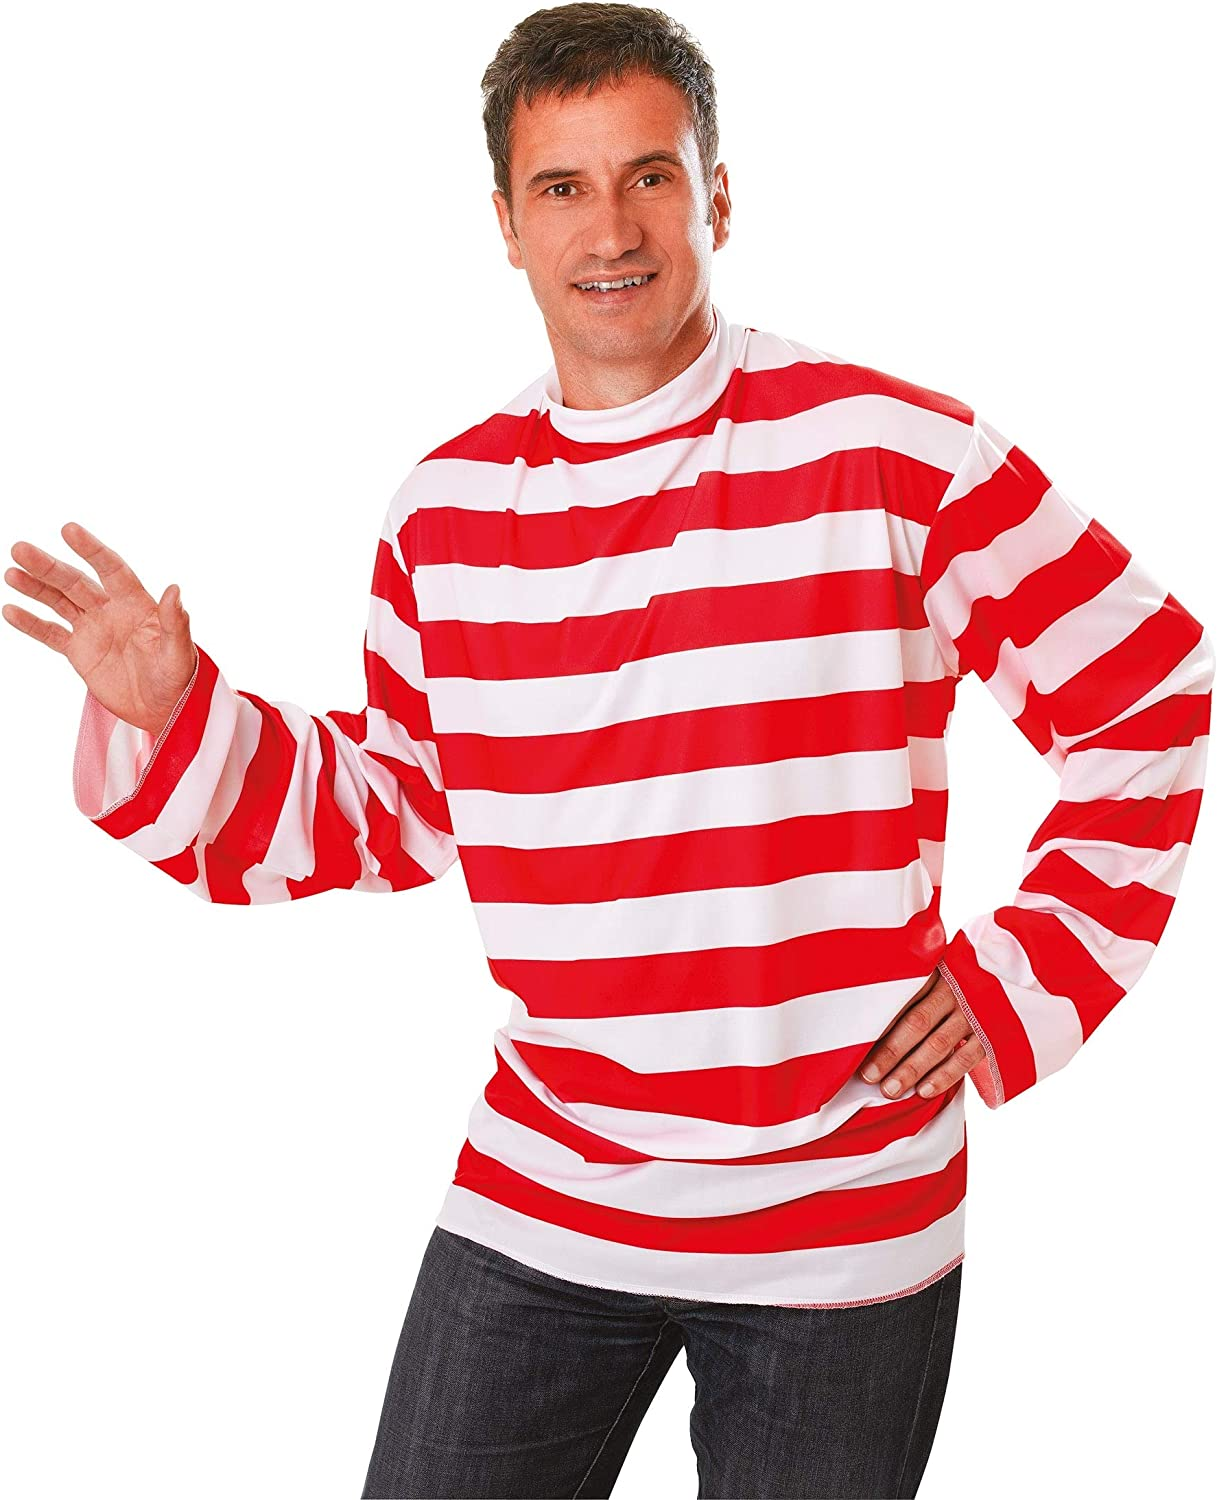 Striped - Disfraz de Wally para hombre, talla 52-54 (AC175 ...